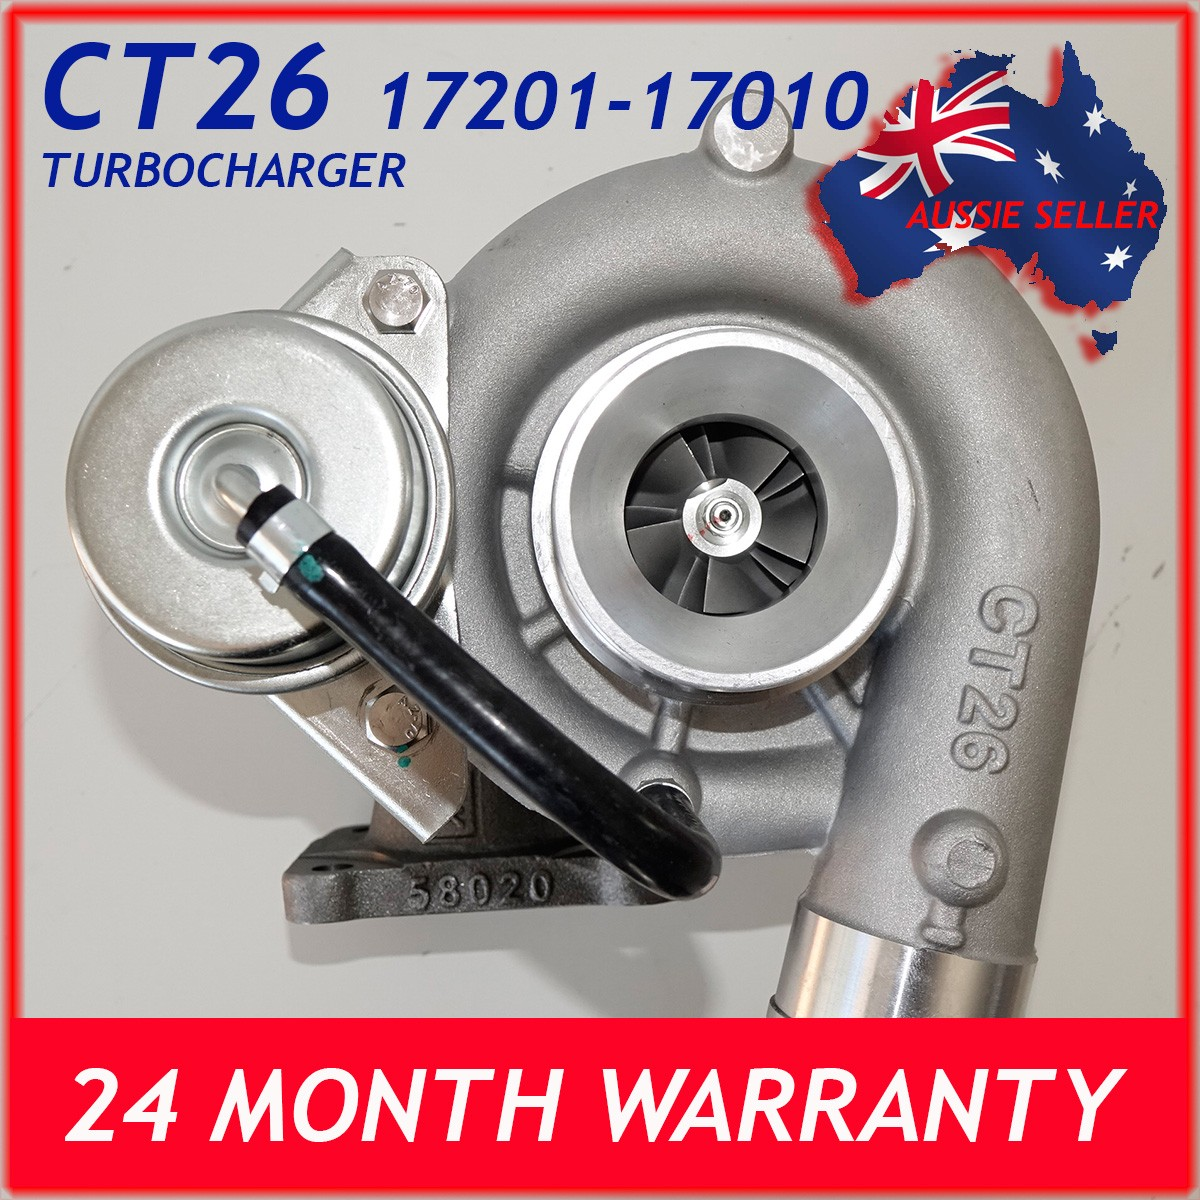 toyota-turbocharger-17201-17010-compressor-main1